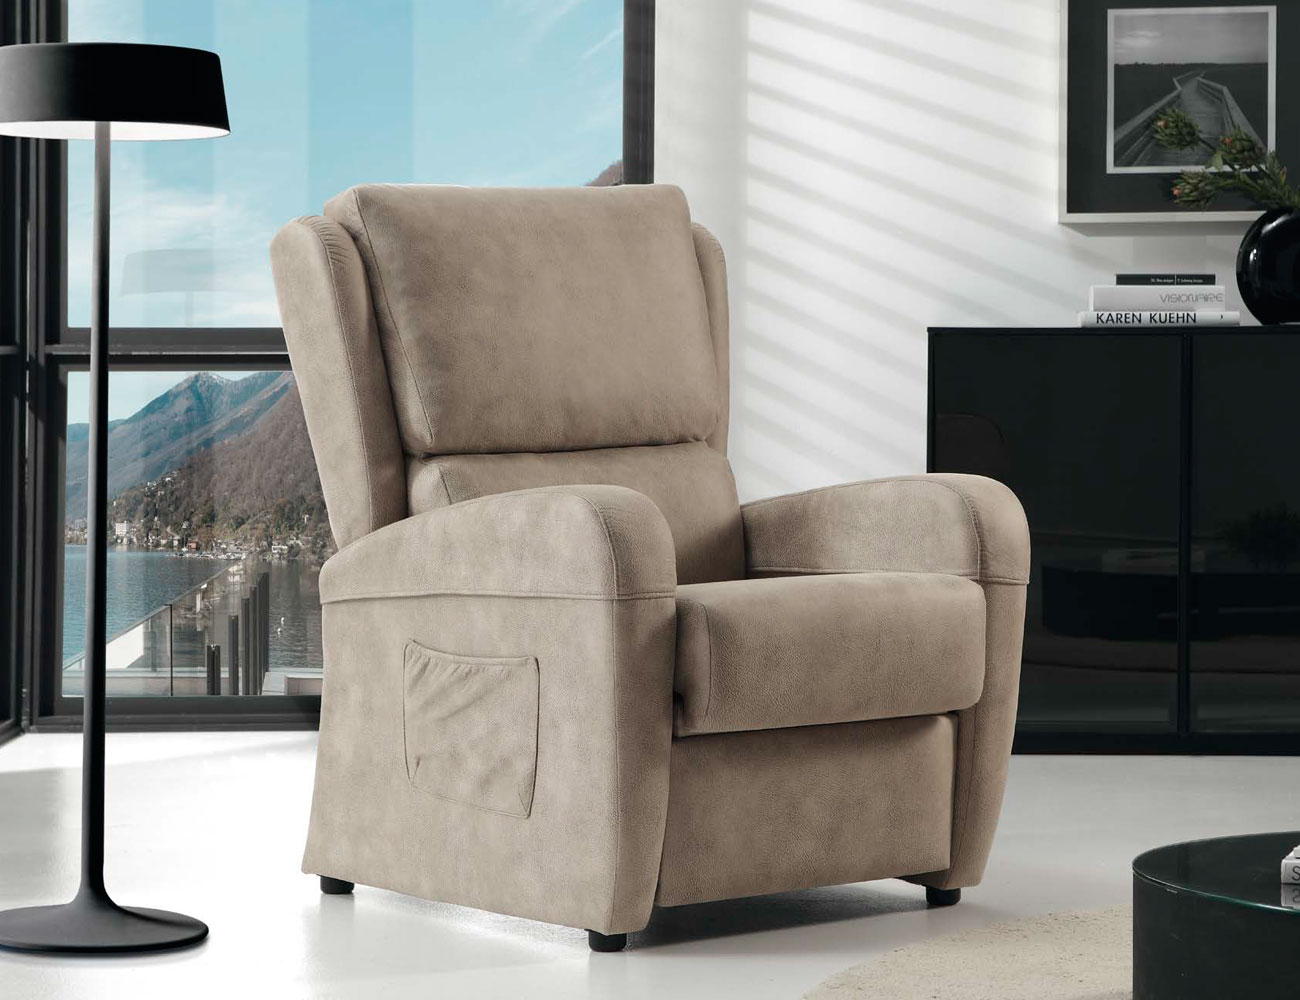 Sillon relax manual jana3